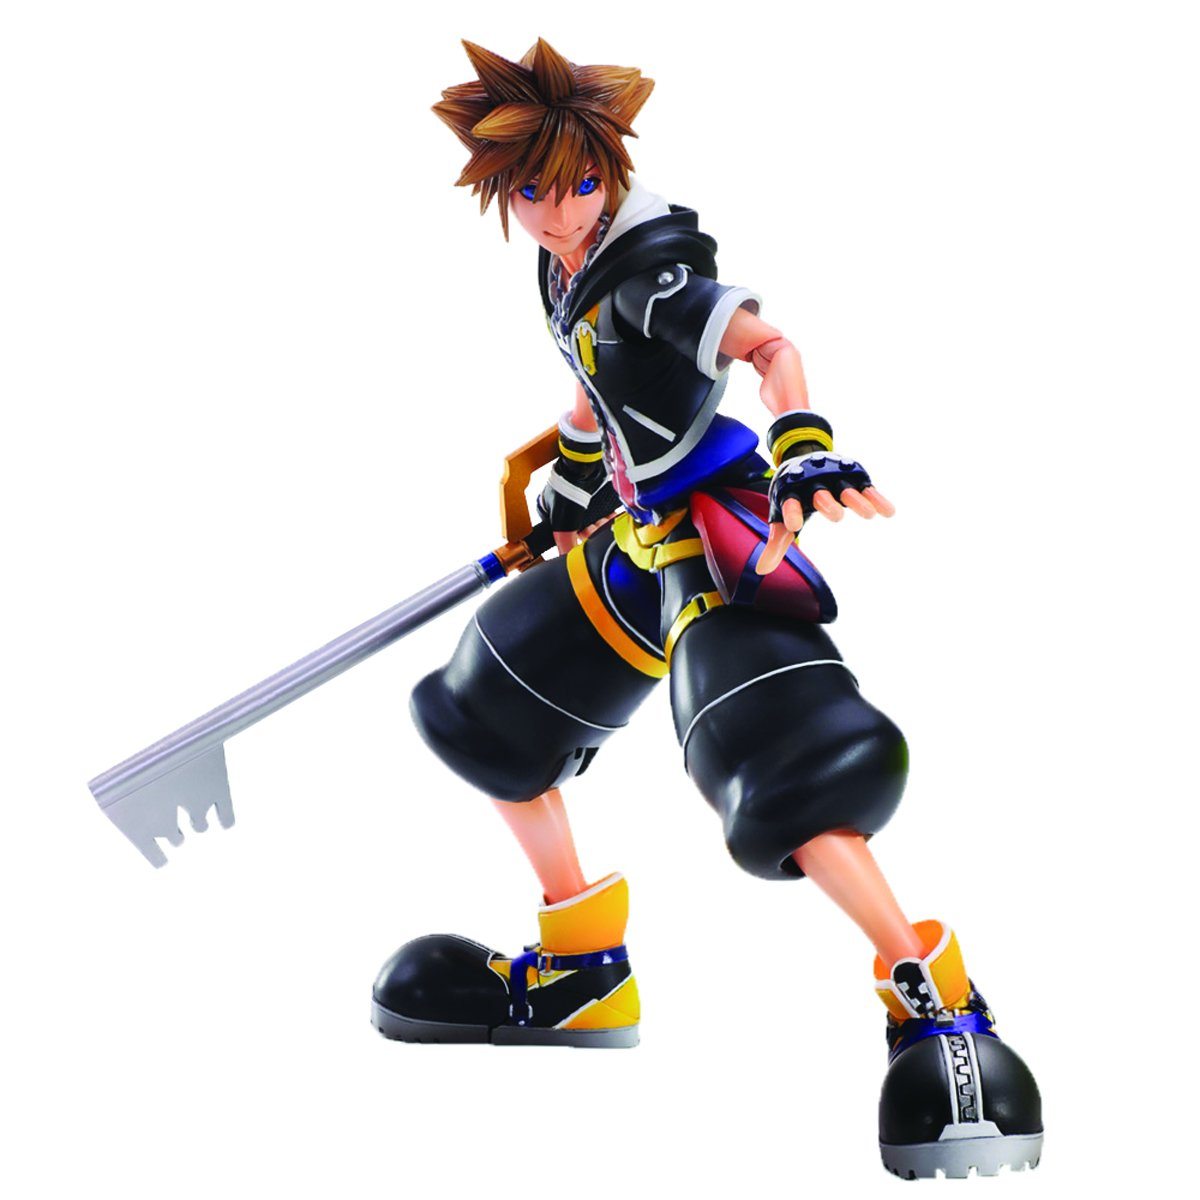 Kingdon Hearts II Play Arts Kai Sora Action Figur